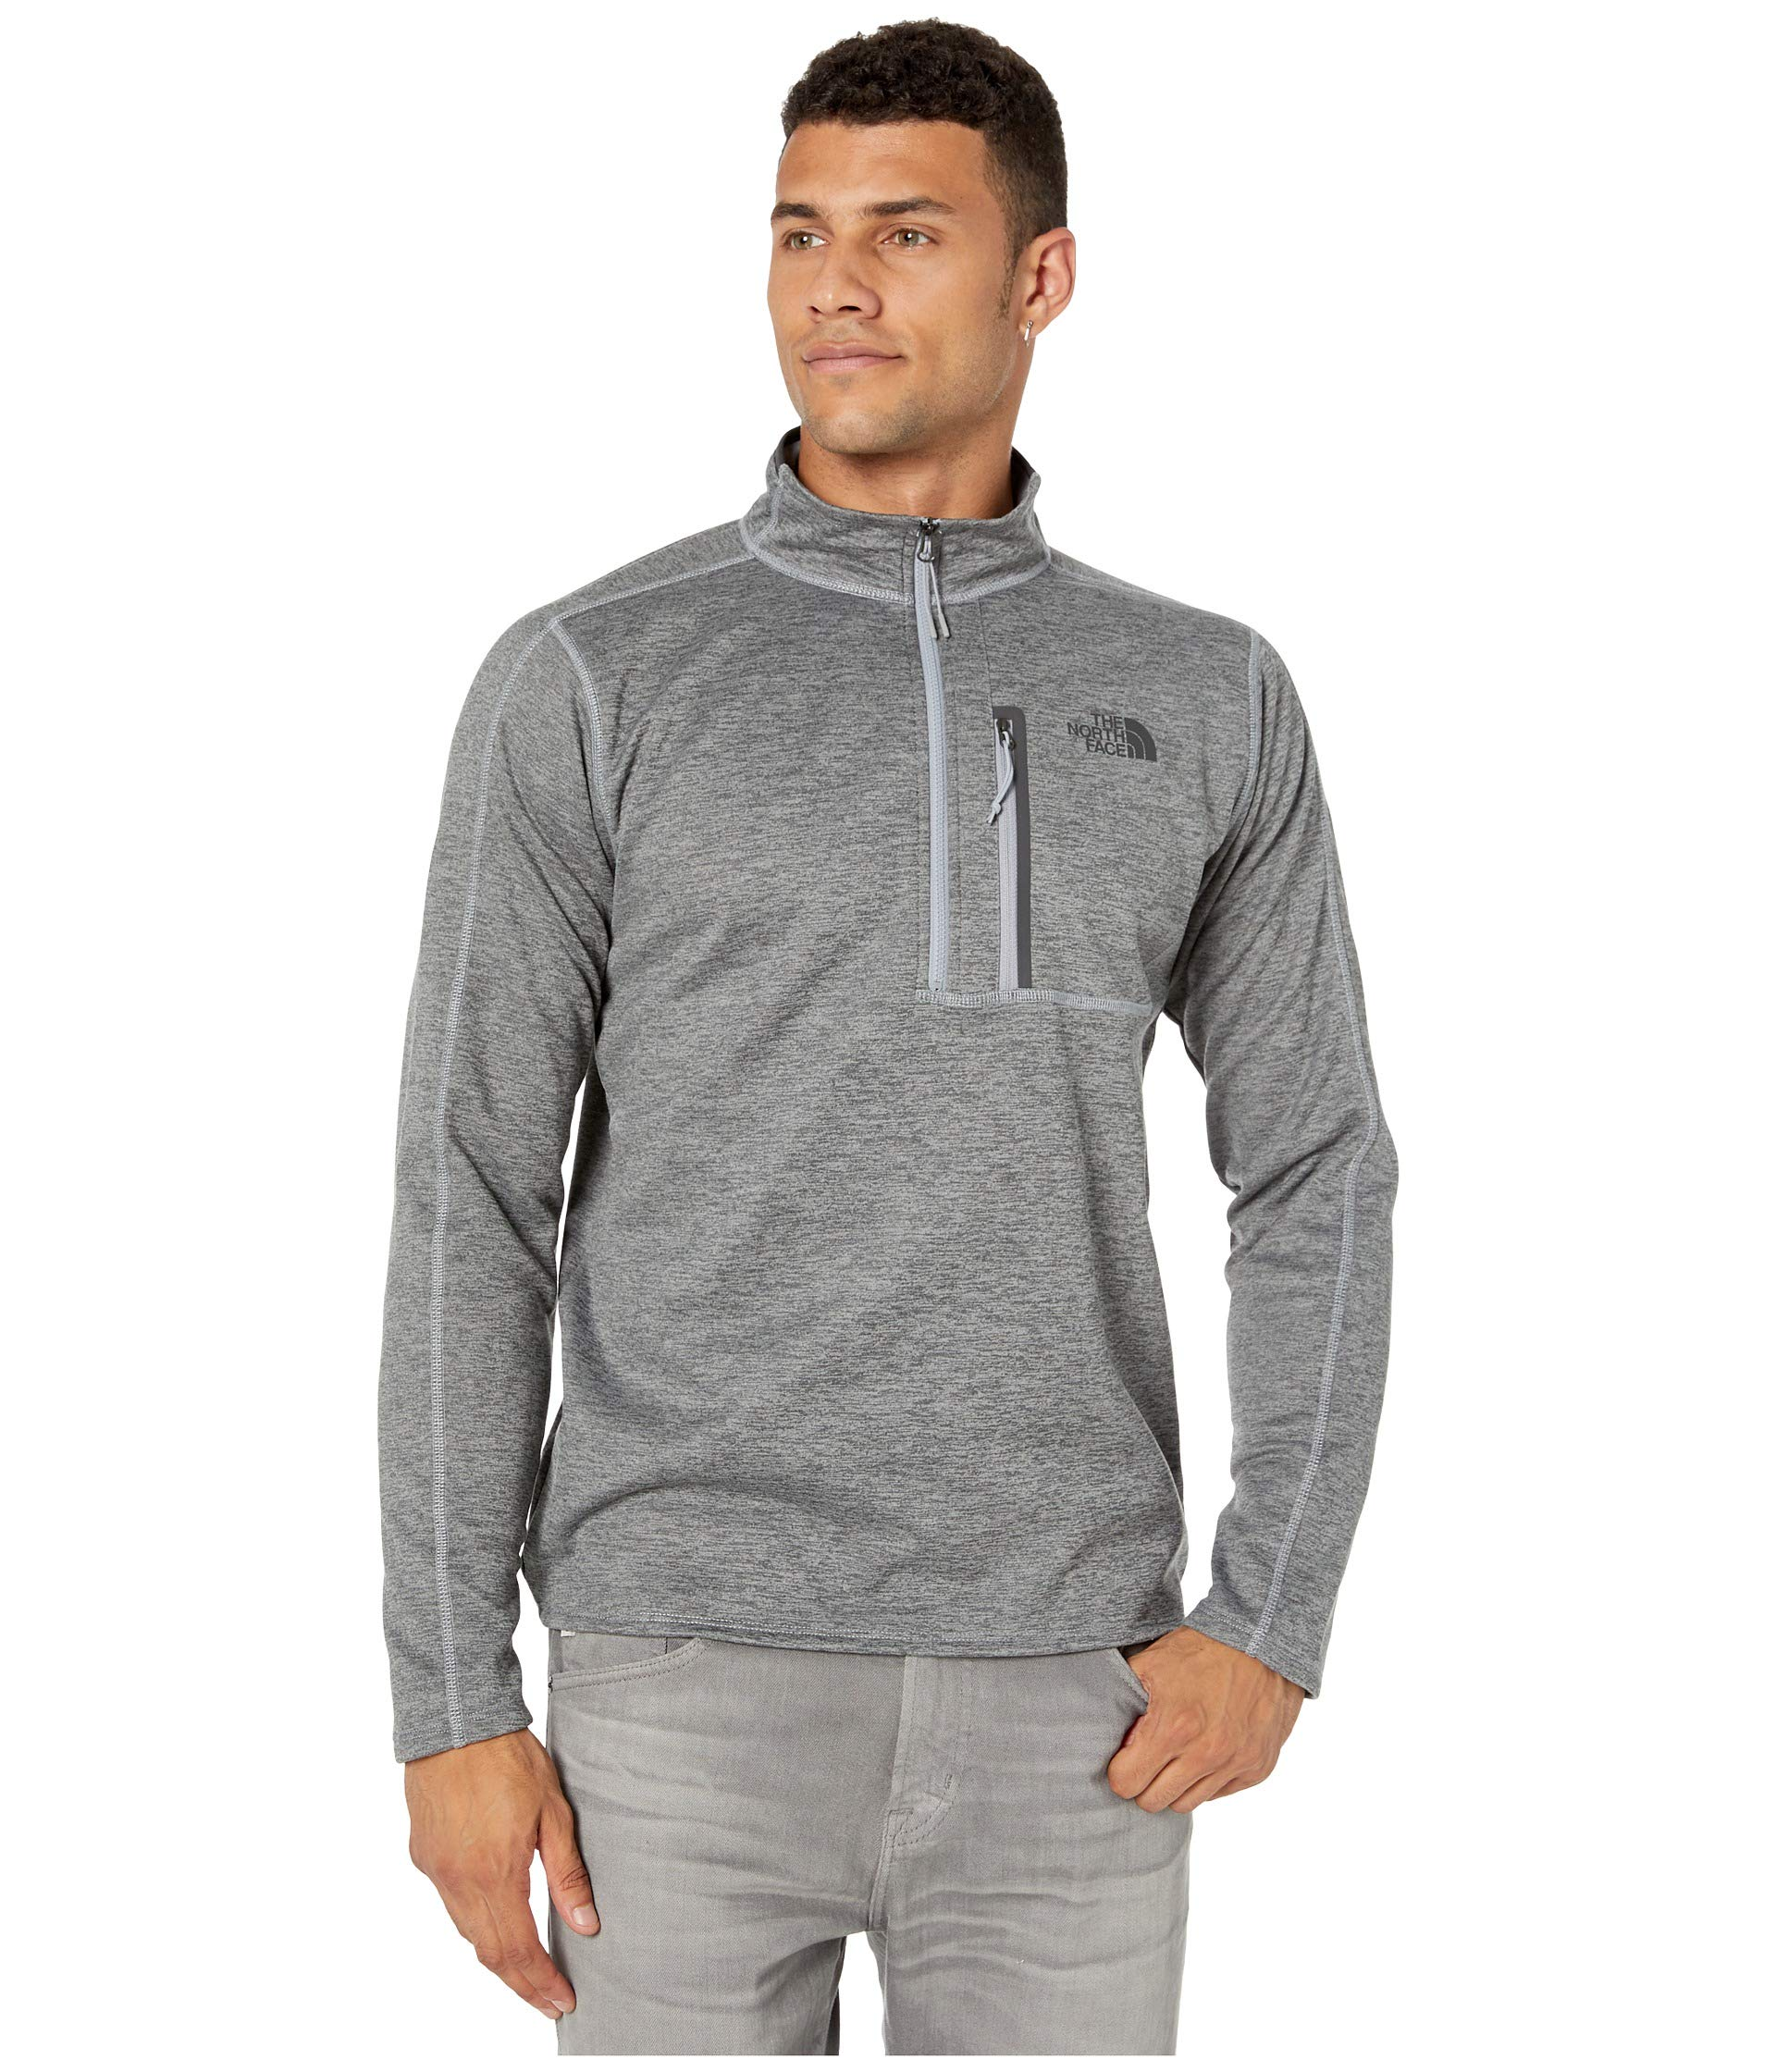 The North Face Men's Canyonlands ½ Zip, TNF Medium Grey Heather, Size XL by The North Face